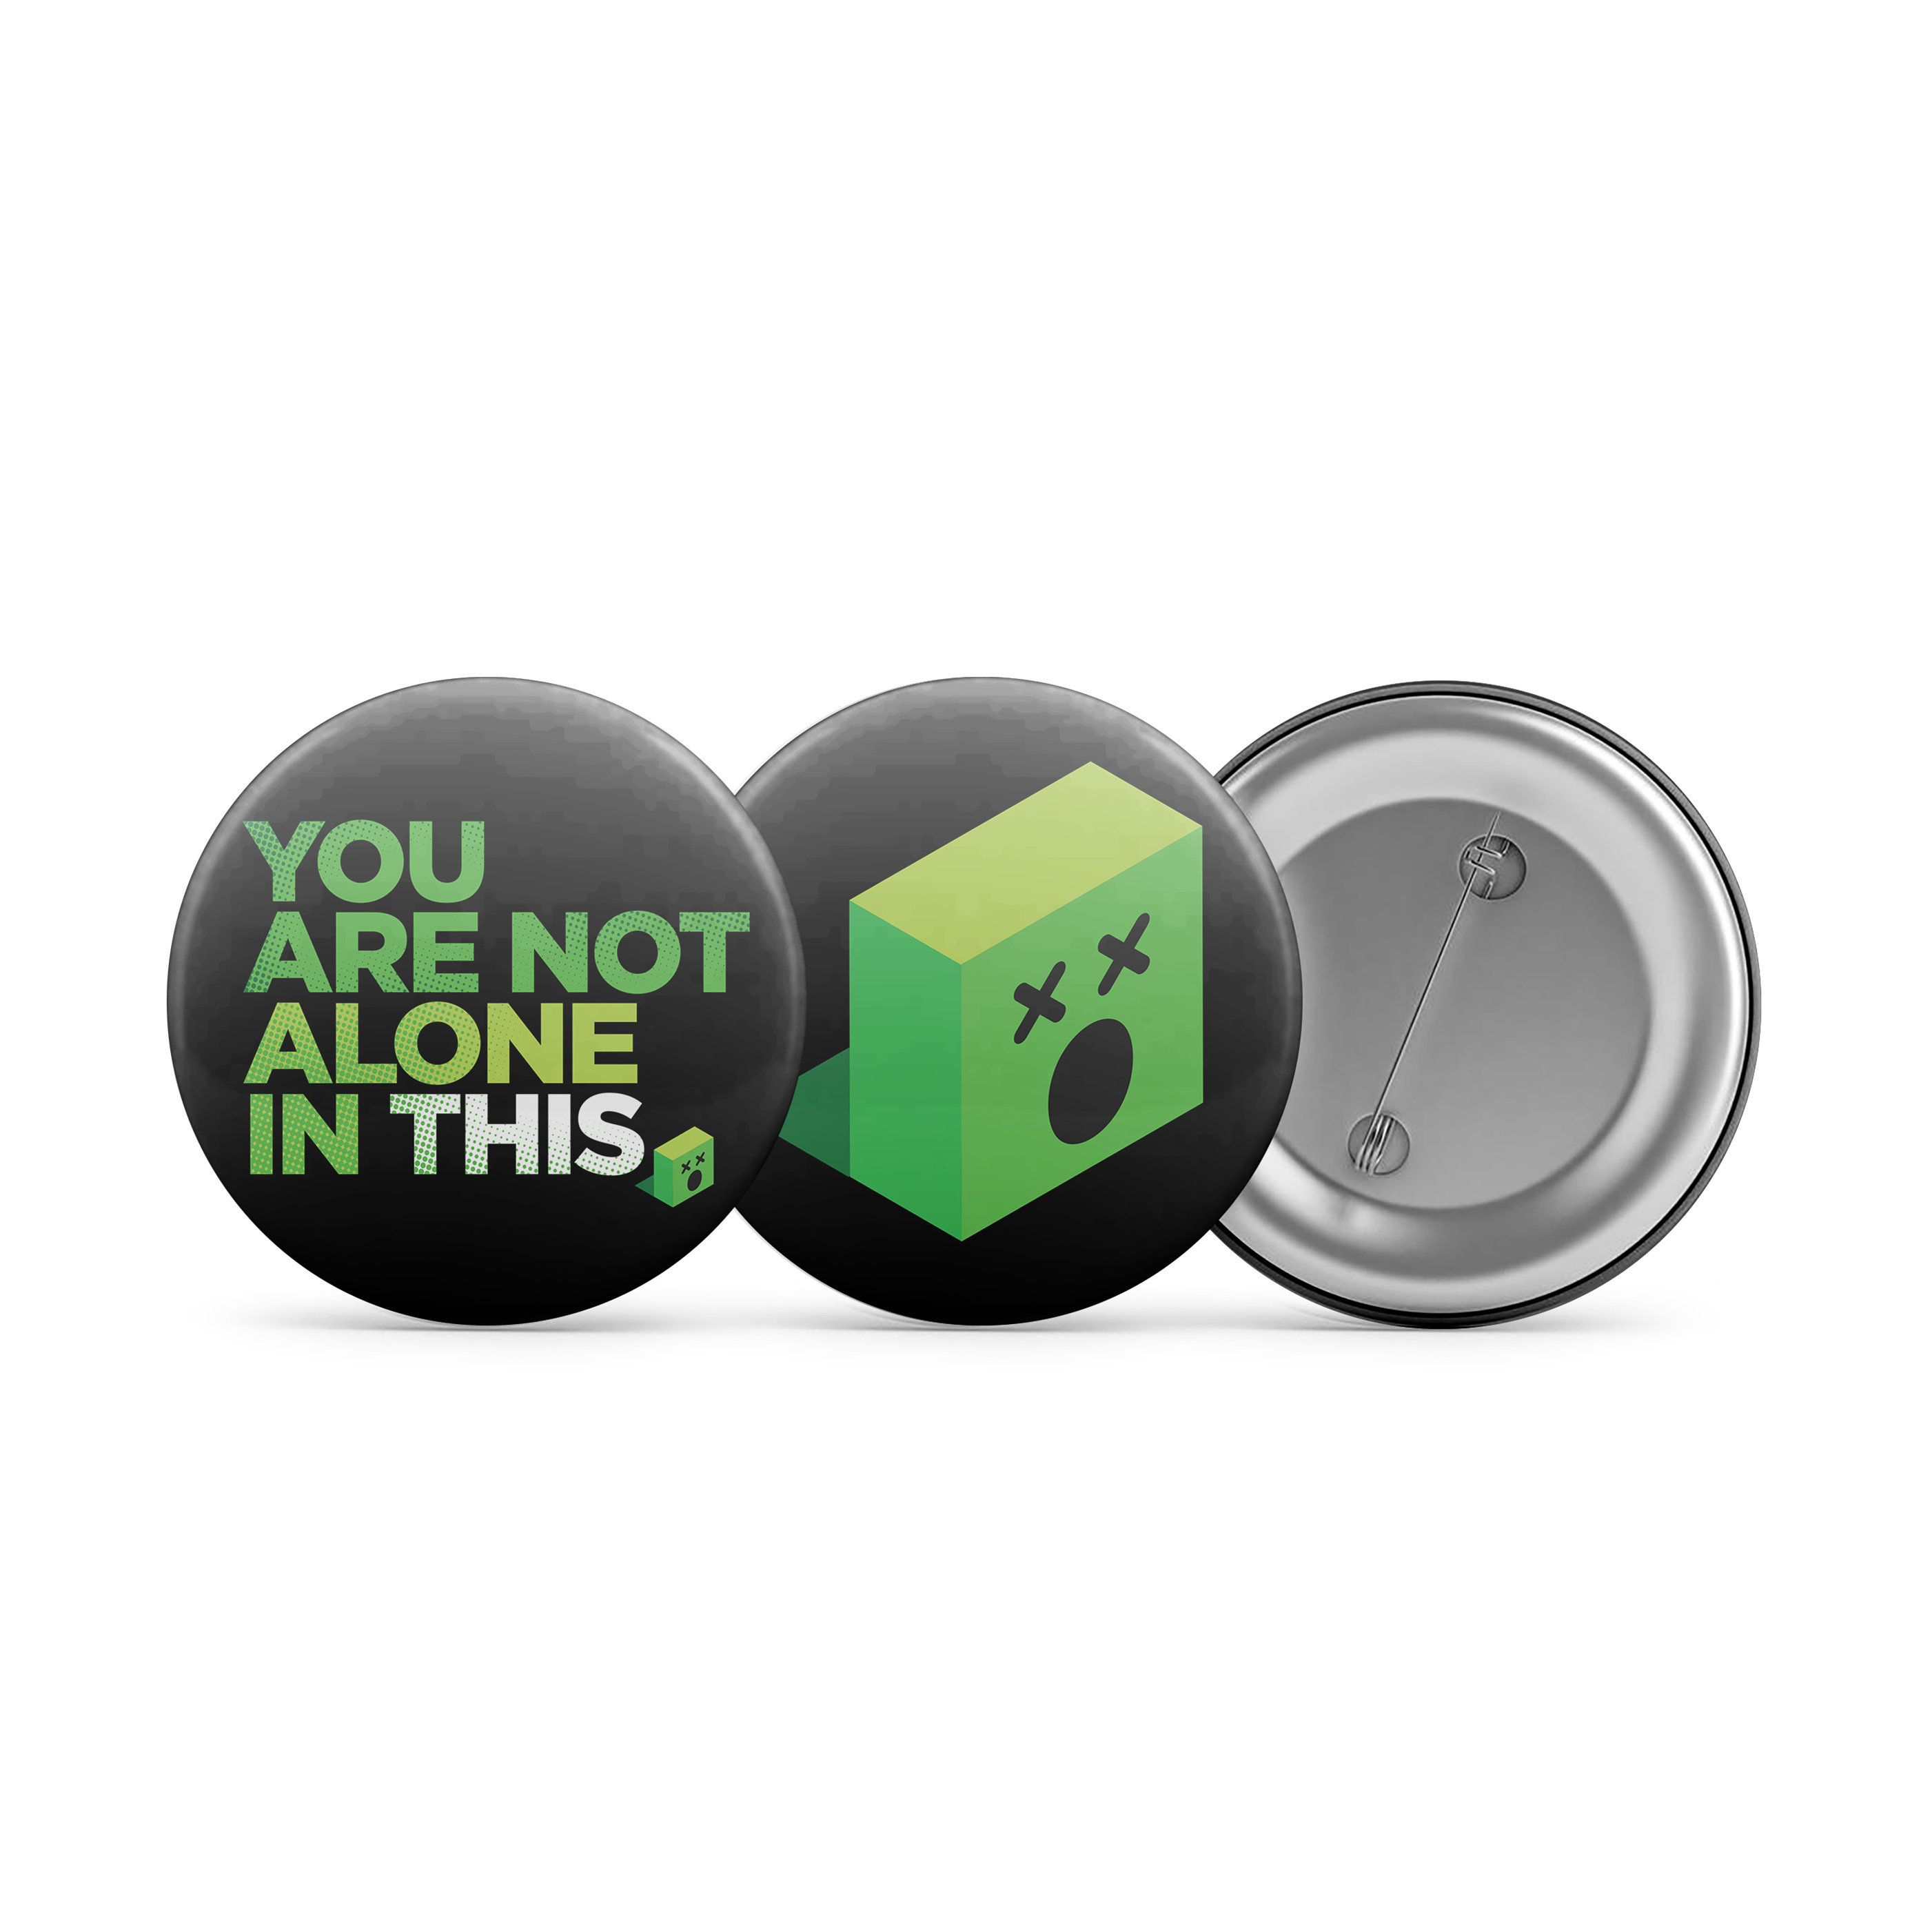 You Are Not Alone in This - The Emoji Art Show Tour 2019 Button Pin Pack 00000